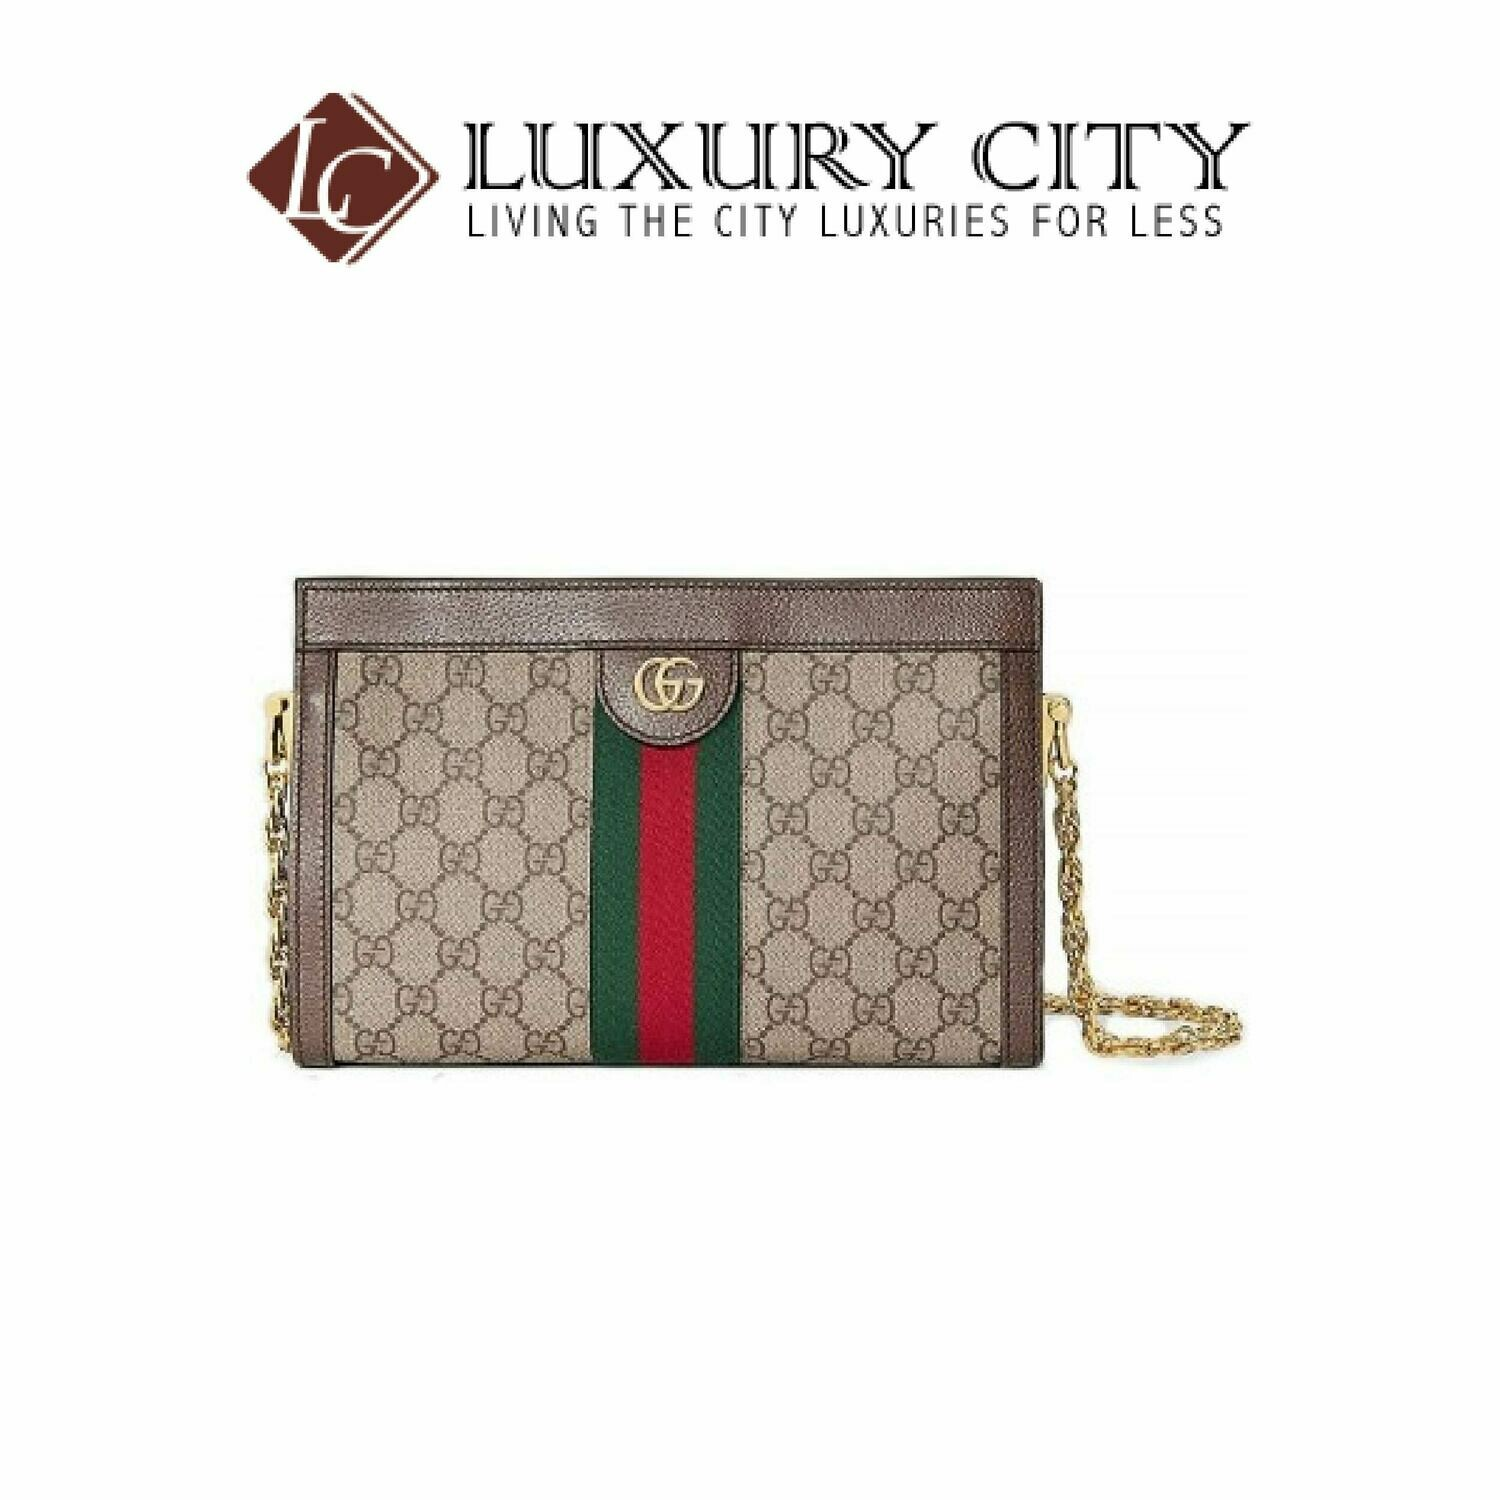 [Luxury City] Gucci Ophidia GG Small Shoulder Bag Light Brown/Sand Gucci- 503877